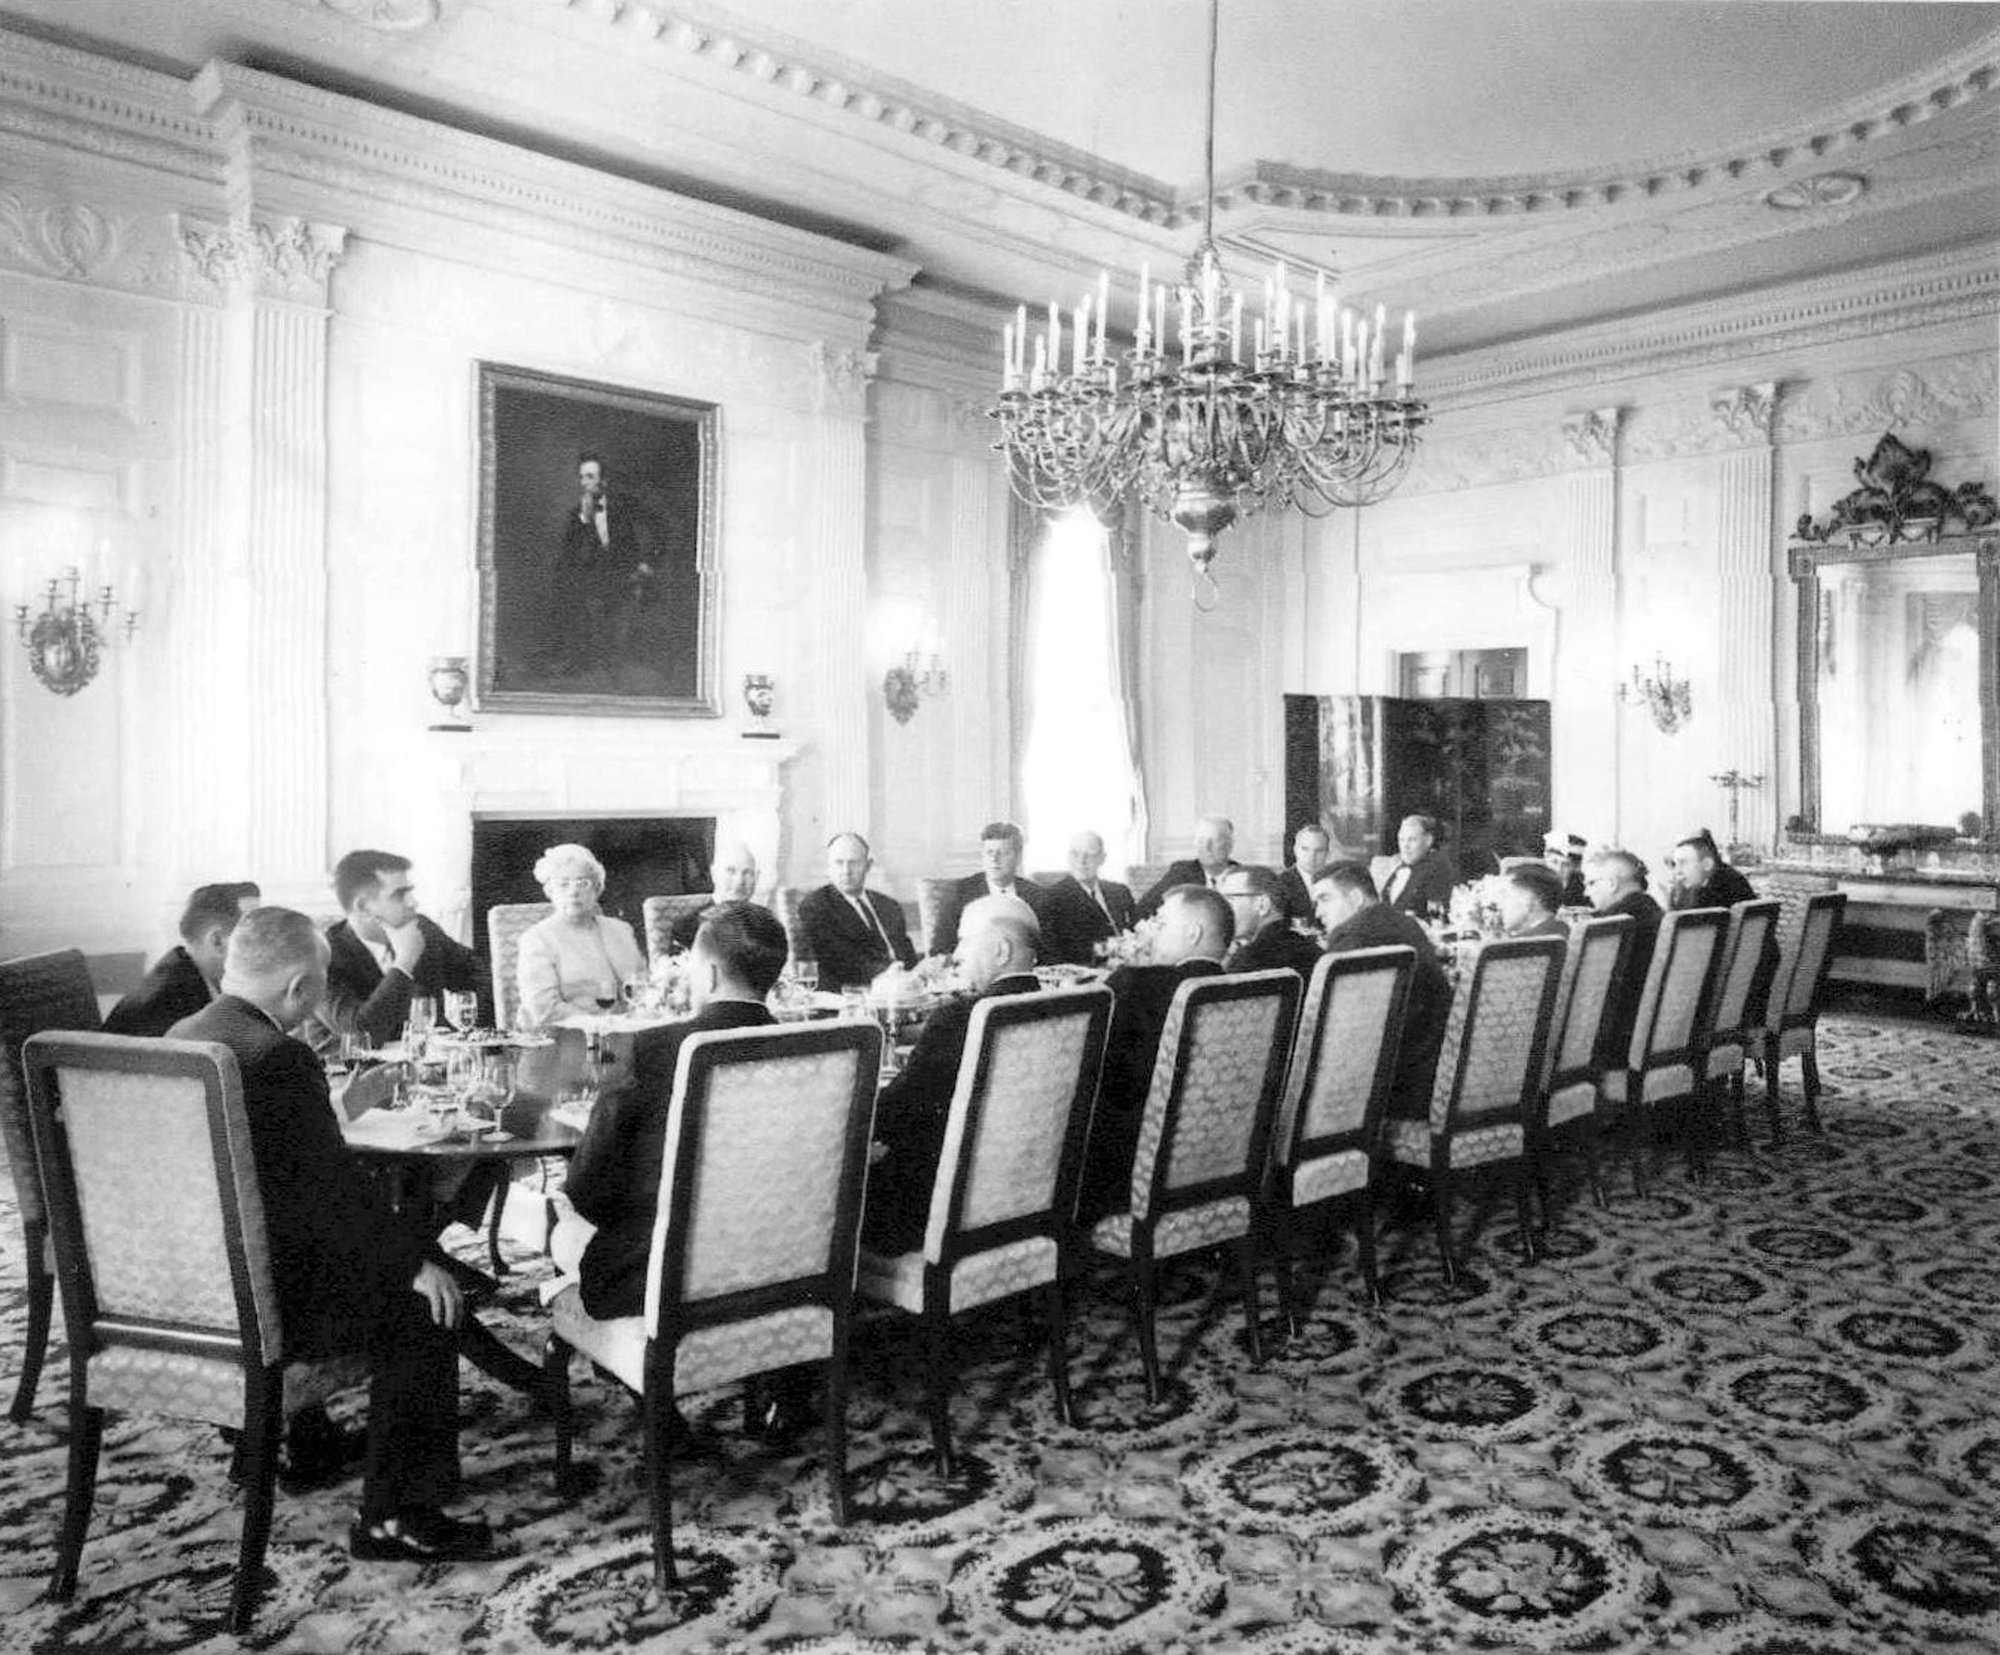 Hubert D. Osteen, editor and publisher of The Sumter Daily Item, visited the White House in 1963 on invitation by the president, John F. Kennedy. Osteen is seen in the third chair from the left, his back facing the camera.